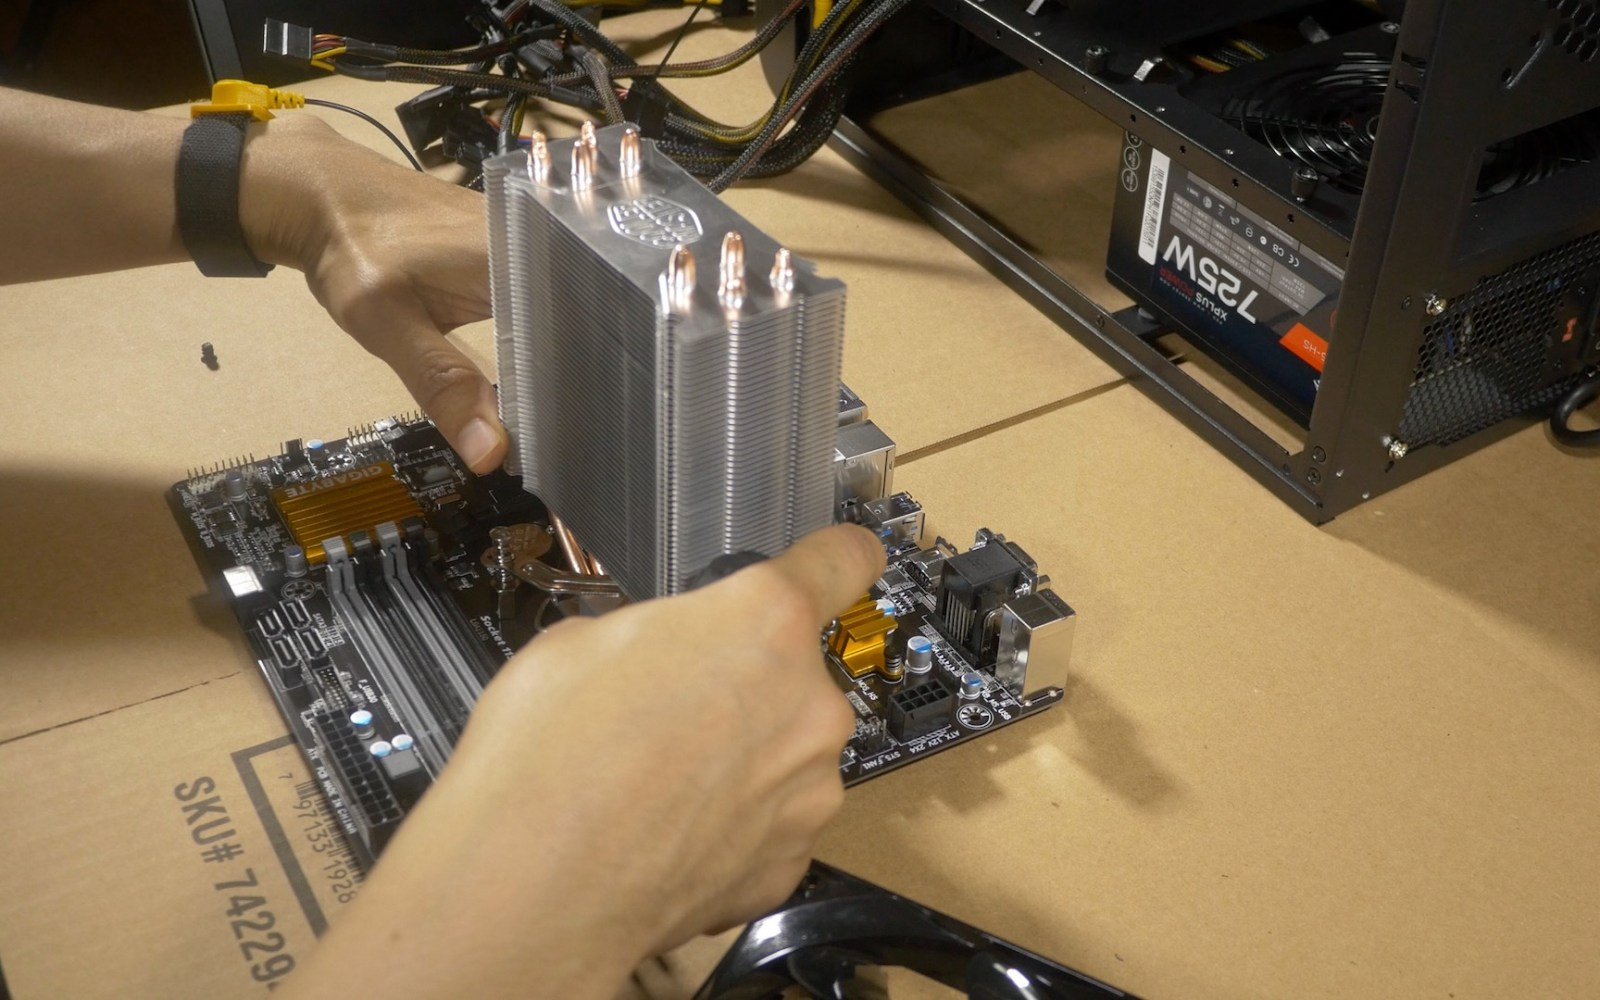 Why Nvidia's upcoming Pascal drivers matter: The Hackintosh